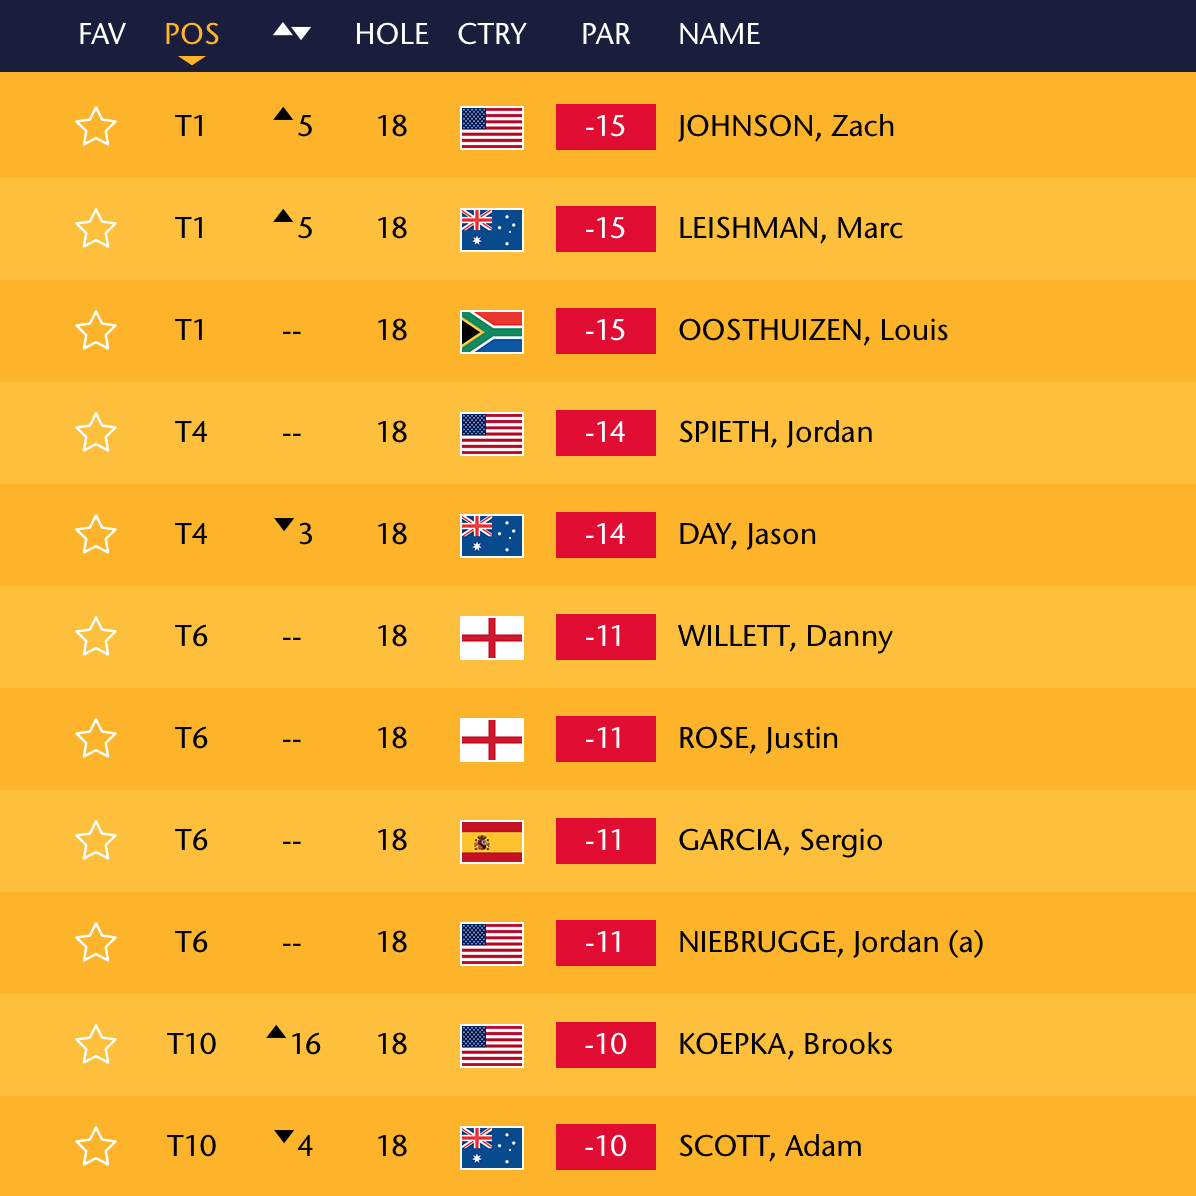 Not to mention, with four of the top ten finishers, USA looks at home @ the British Open! 🇺🇸